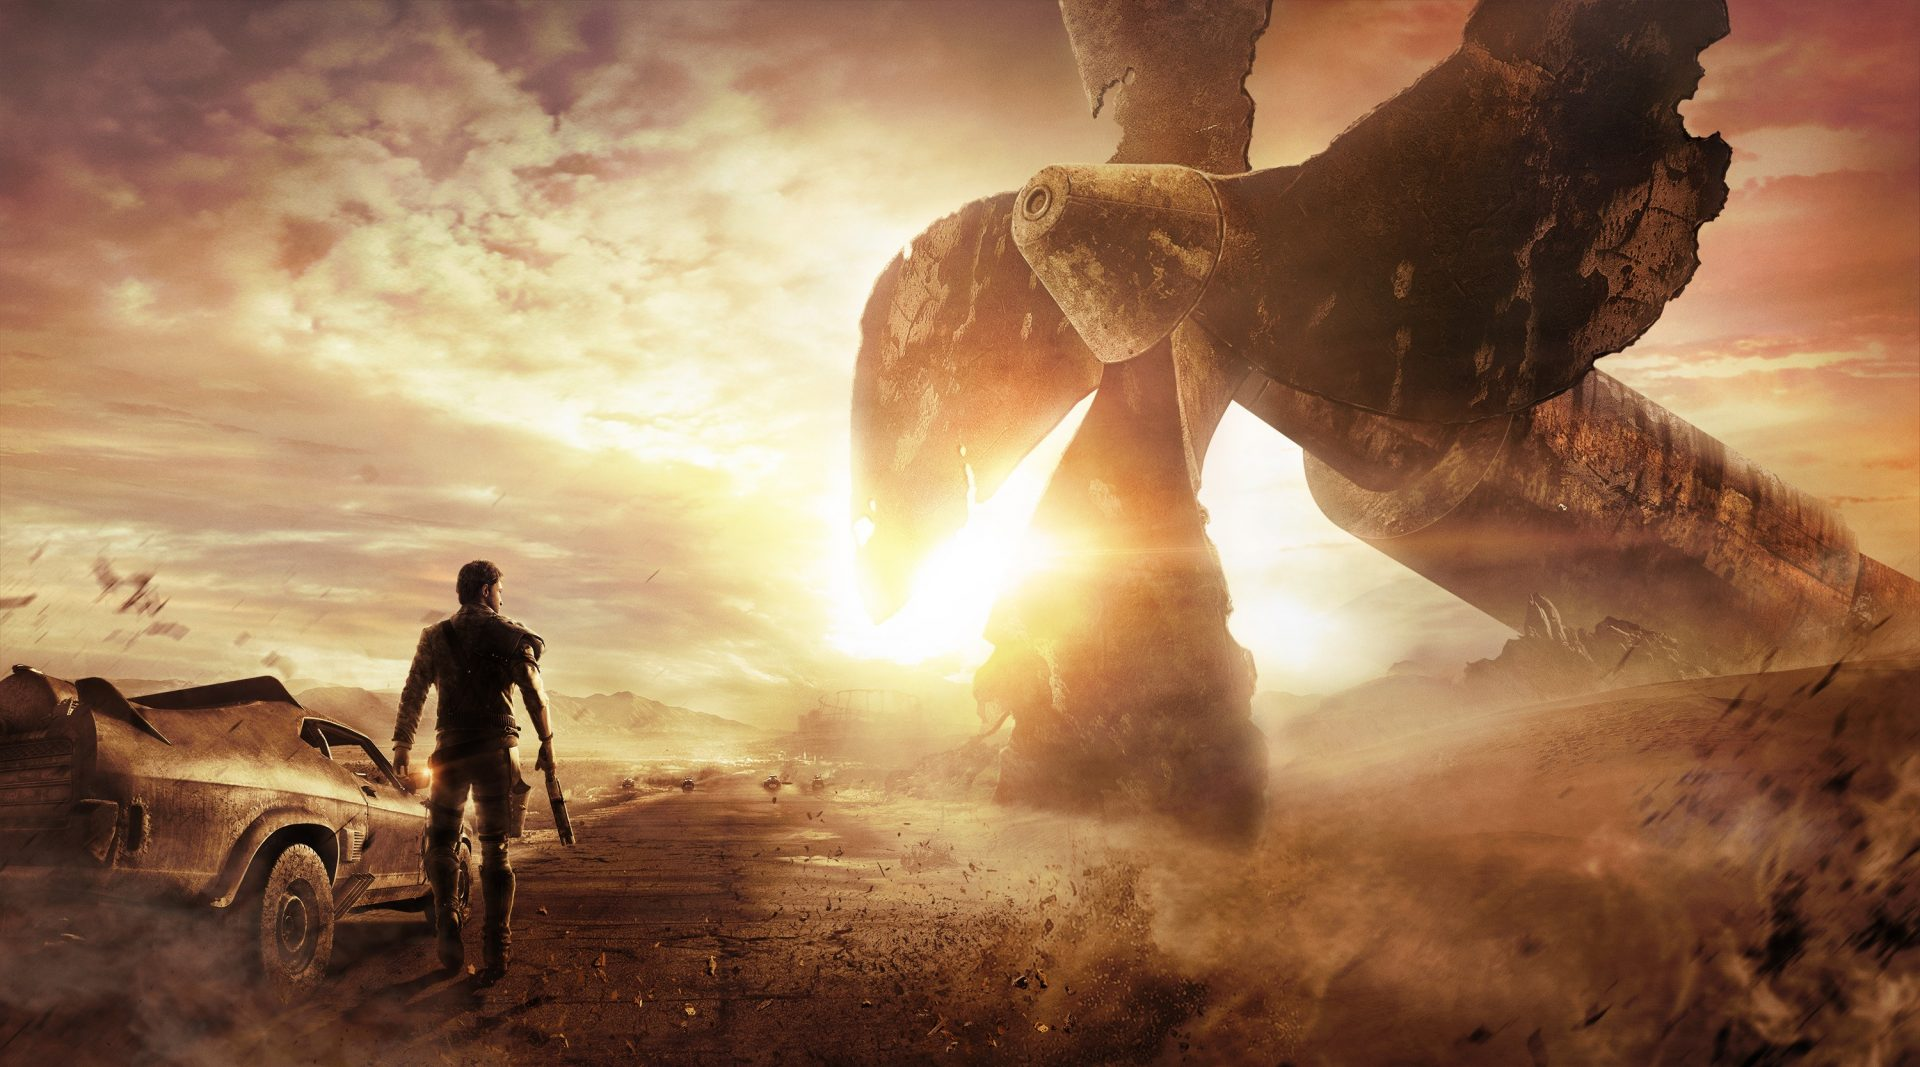 There's a New Trailer for Mad Max